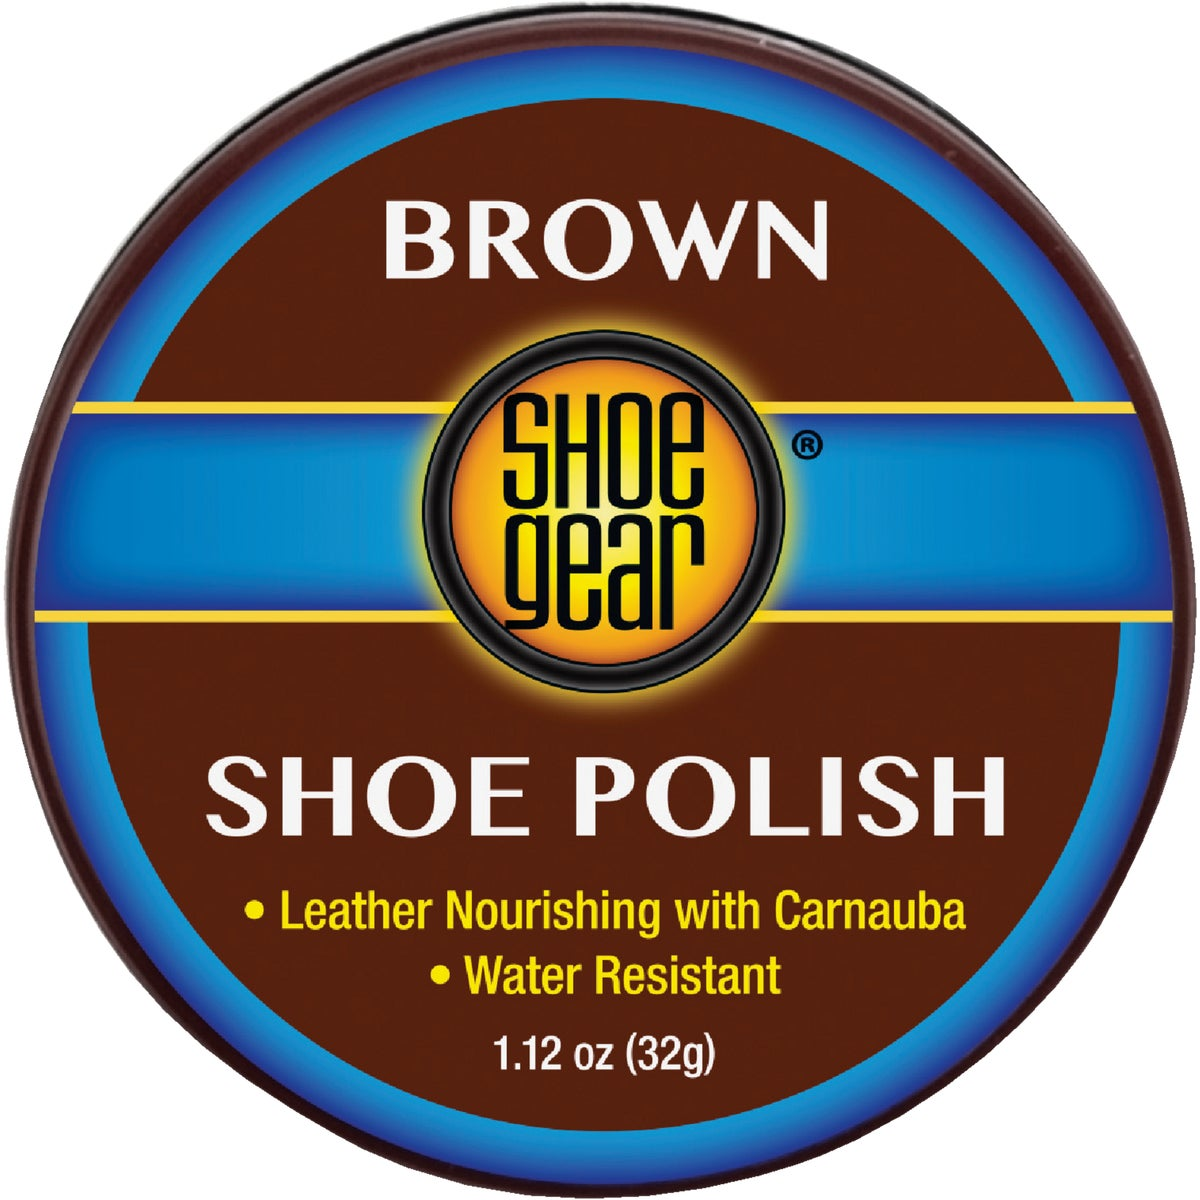 BROWN SHOE POLISH - 10113 by Sc Johnson